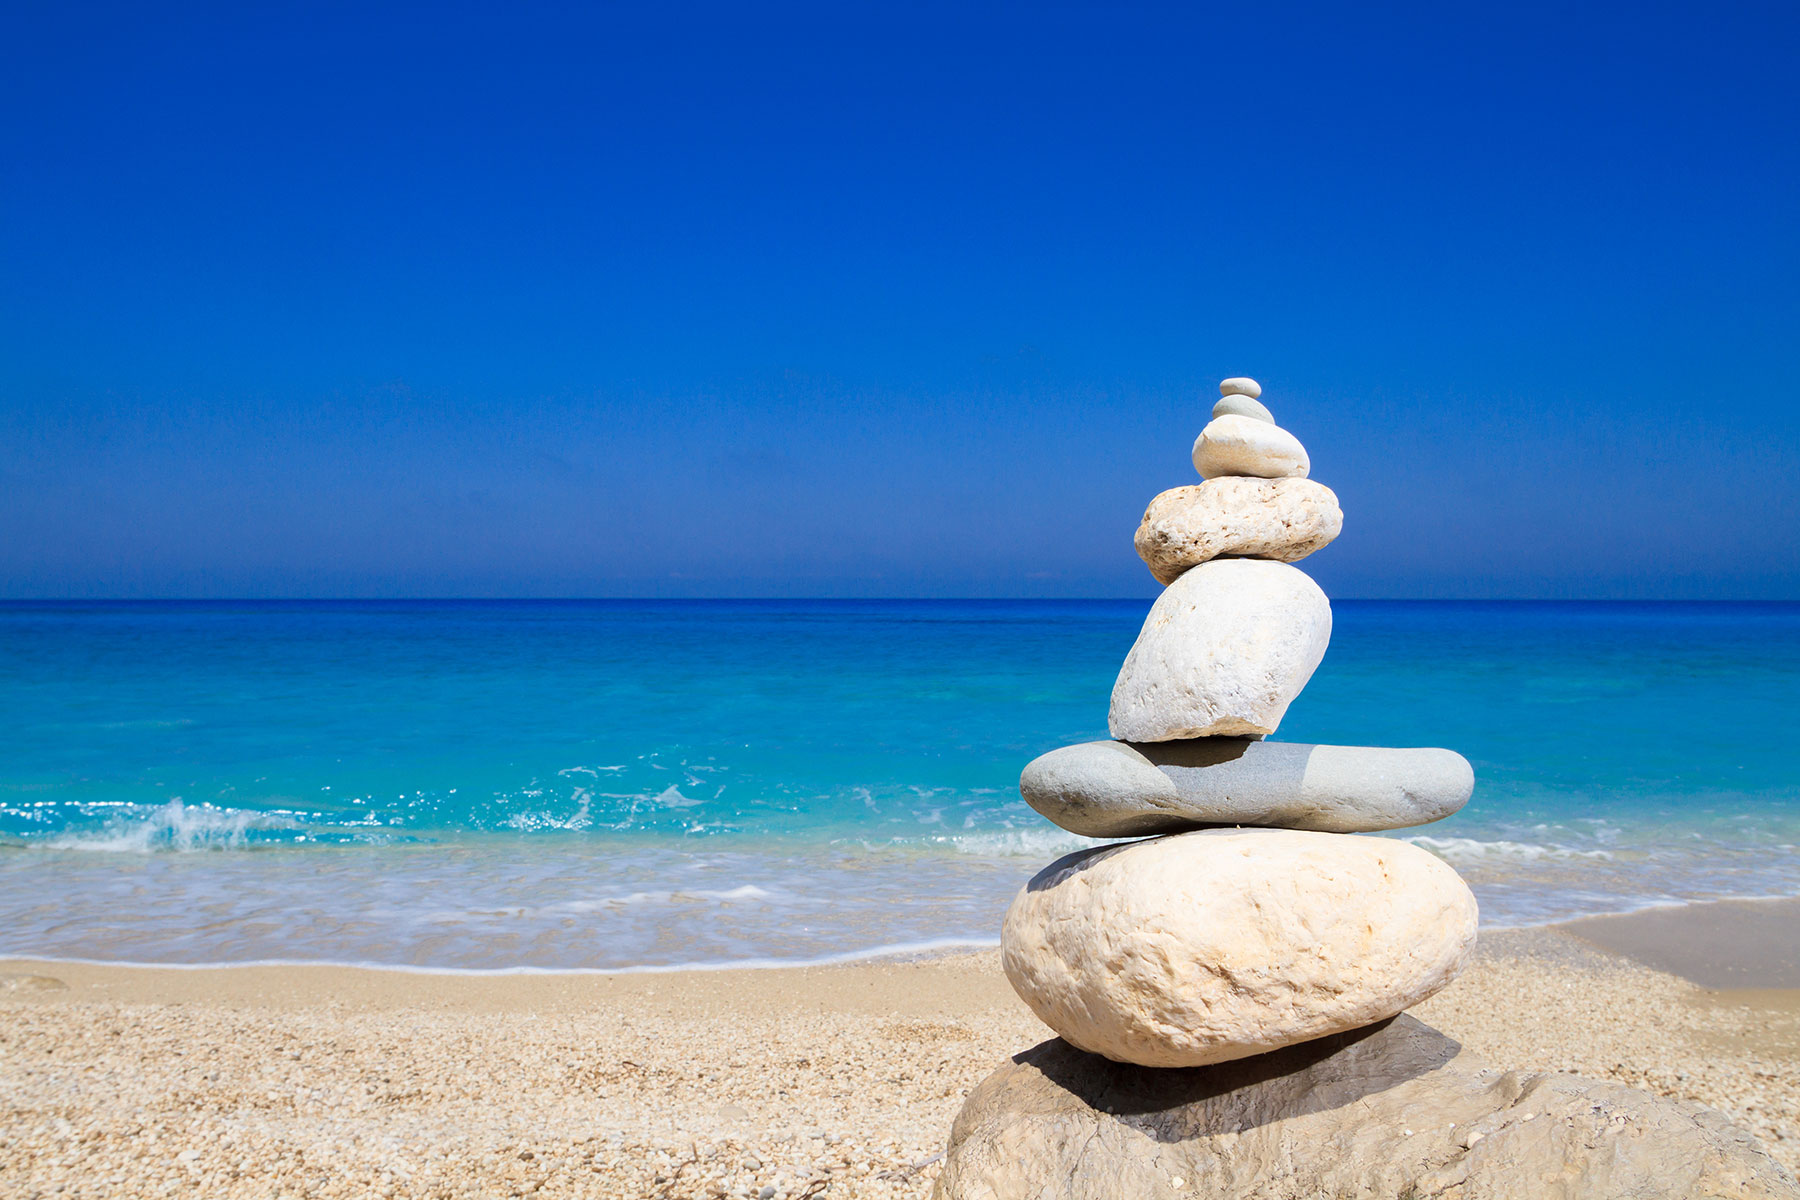 A pile of stones on a sandy beach in Greece looking out to the azure blue Mediterranean sea